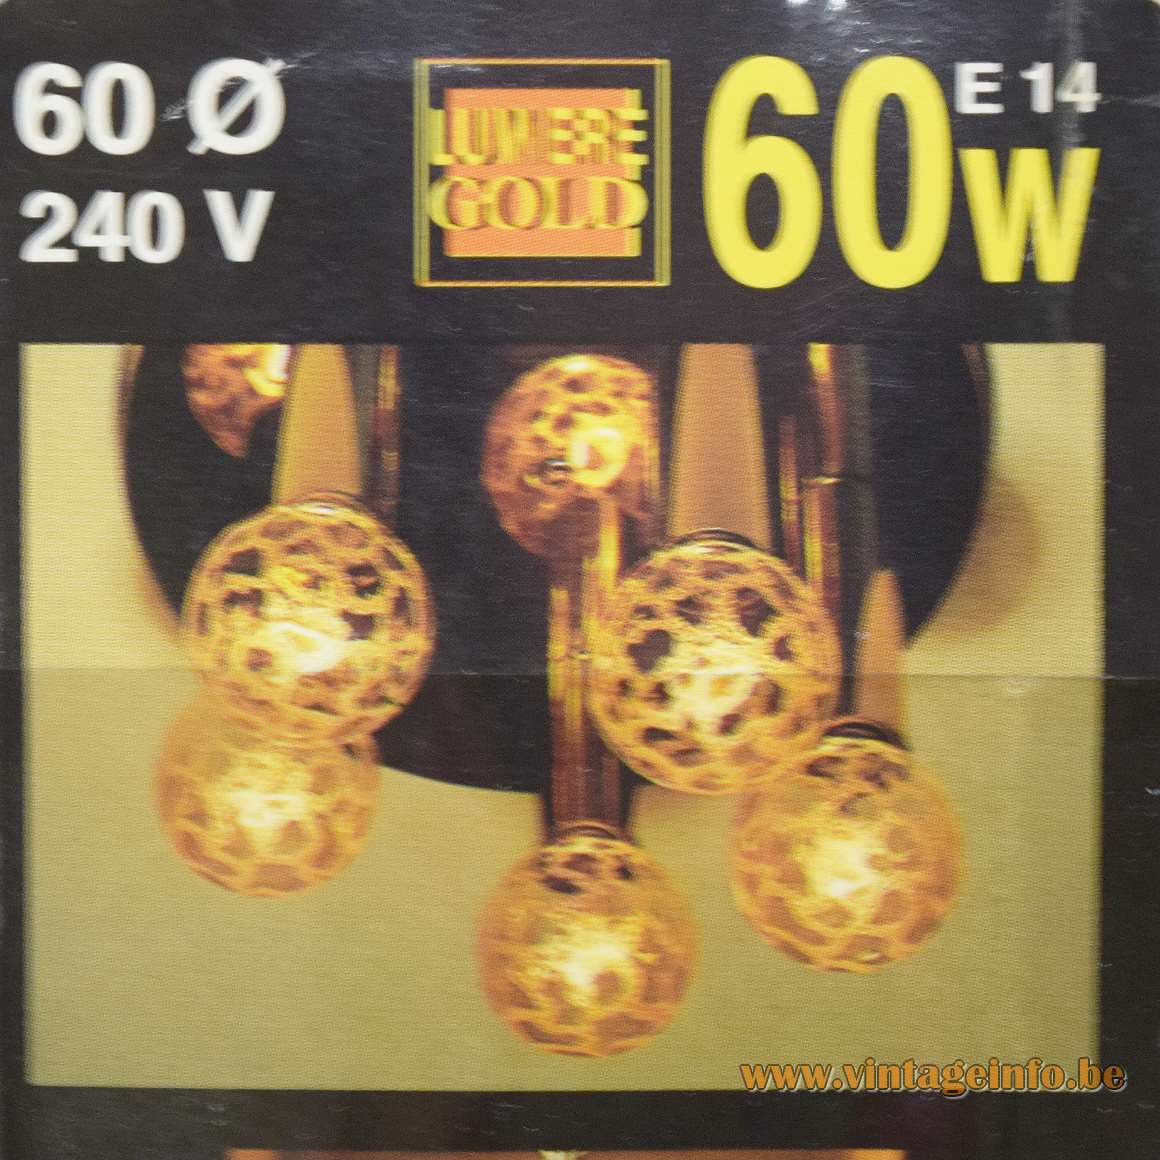 Paulmann Goldlight Light Bulbs E14, 60 Watt